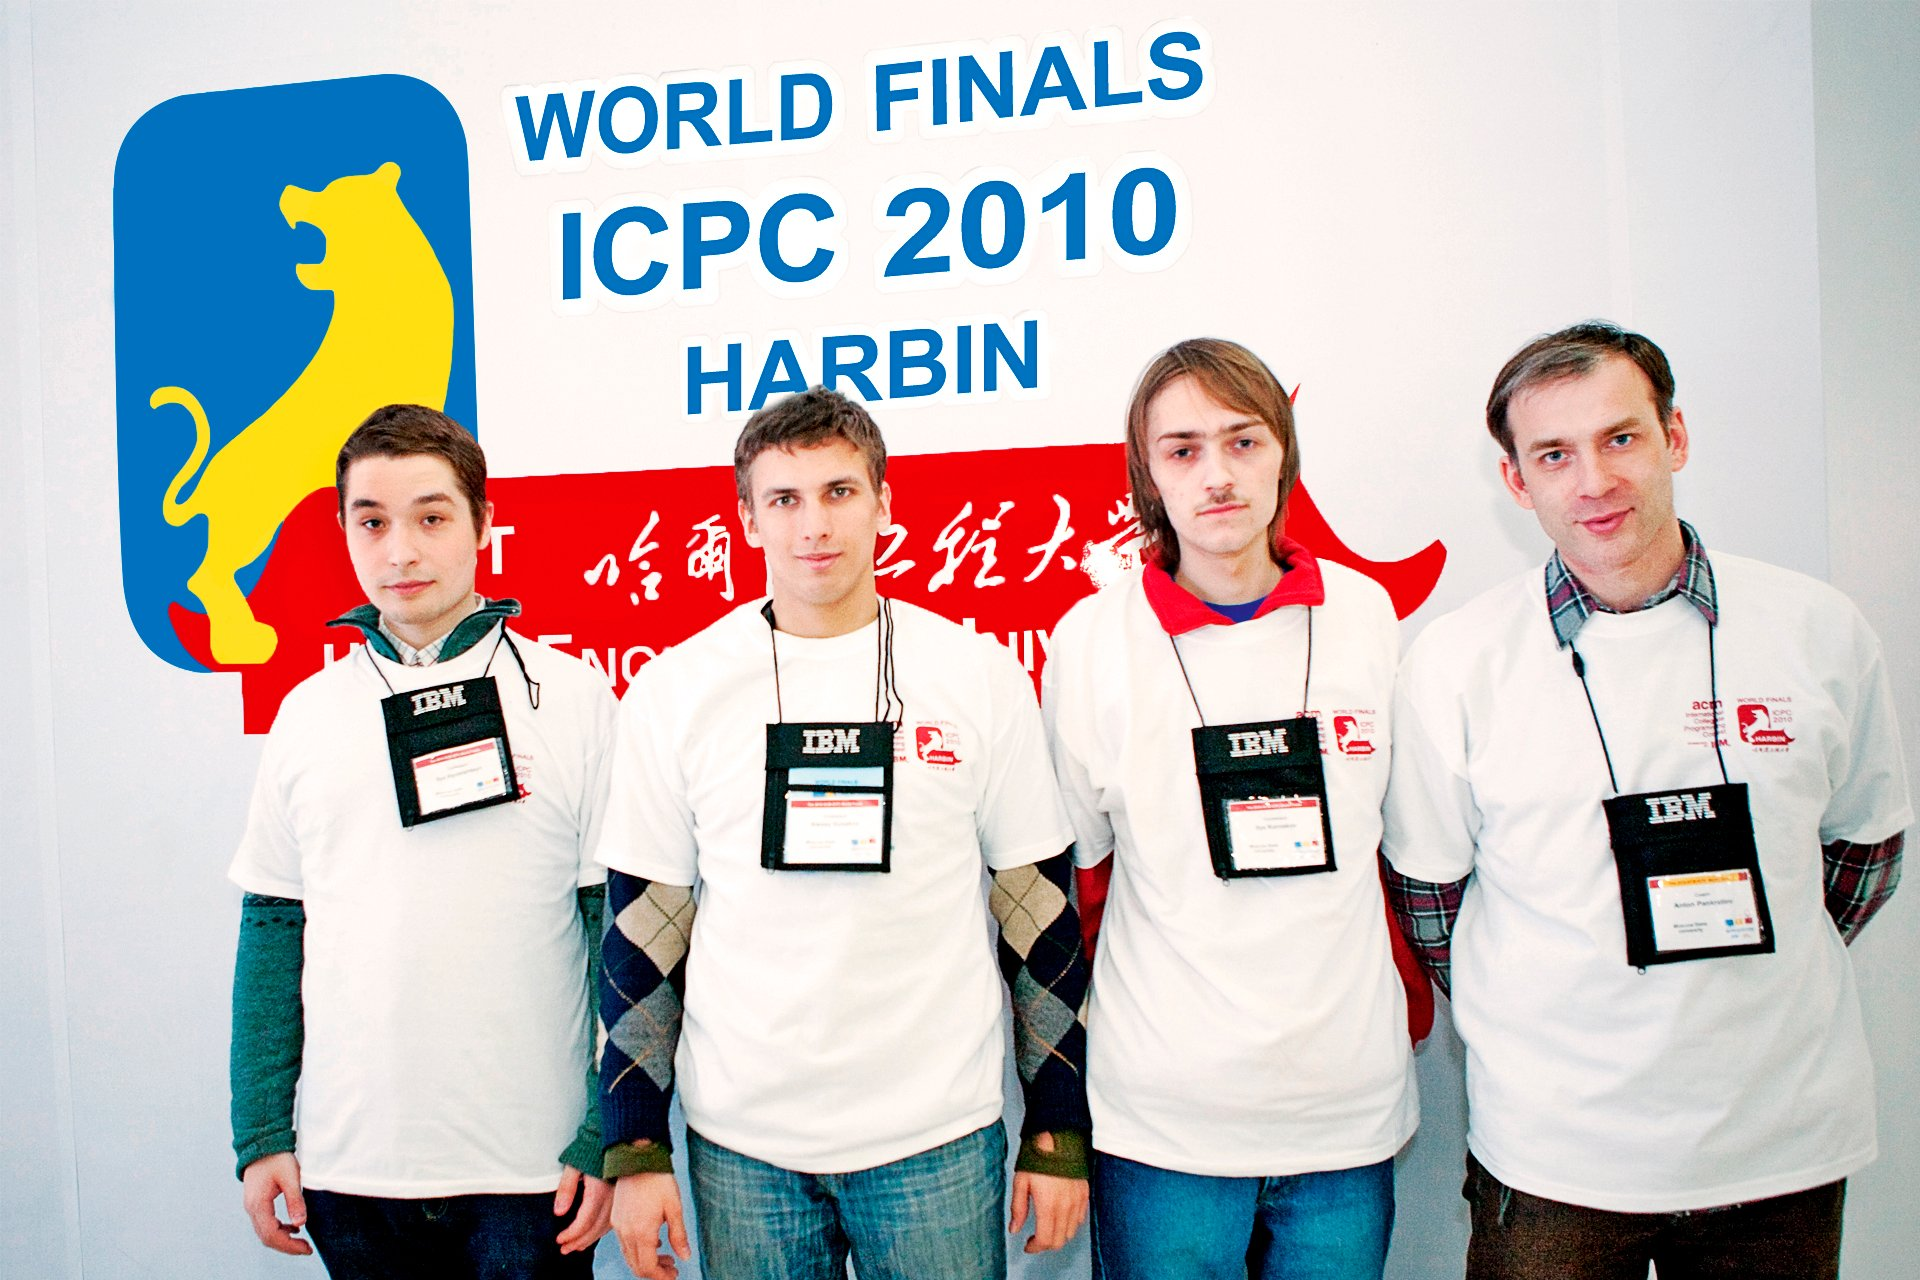 2010 World Finals Champions